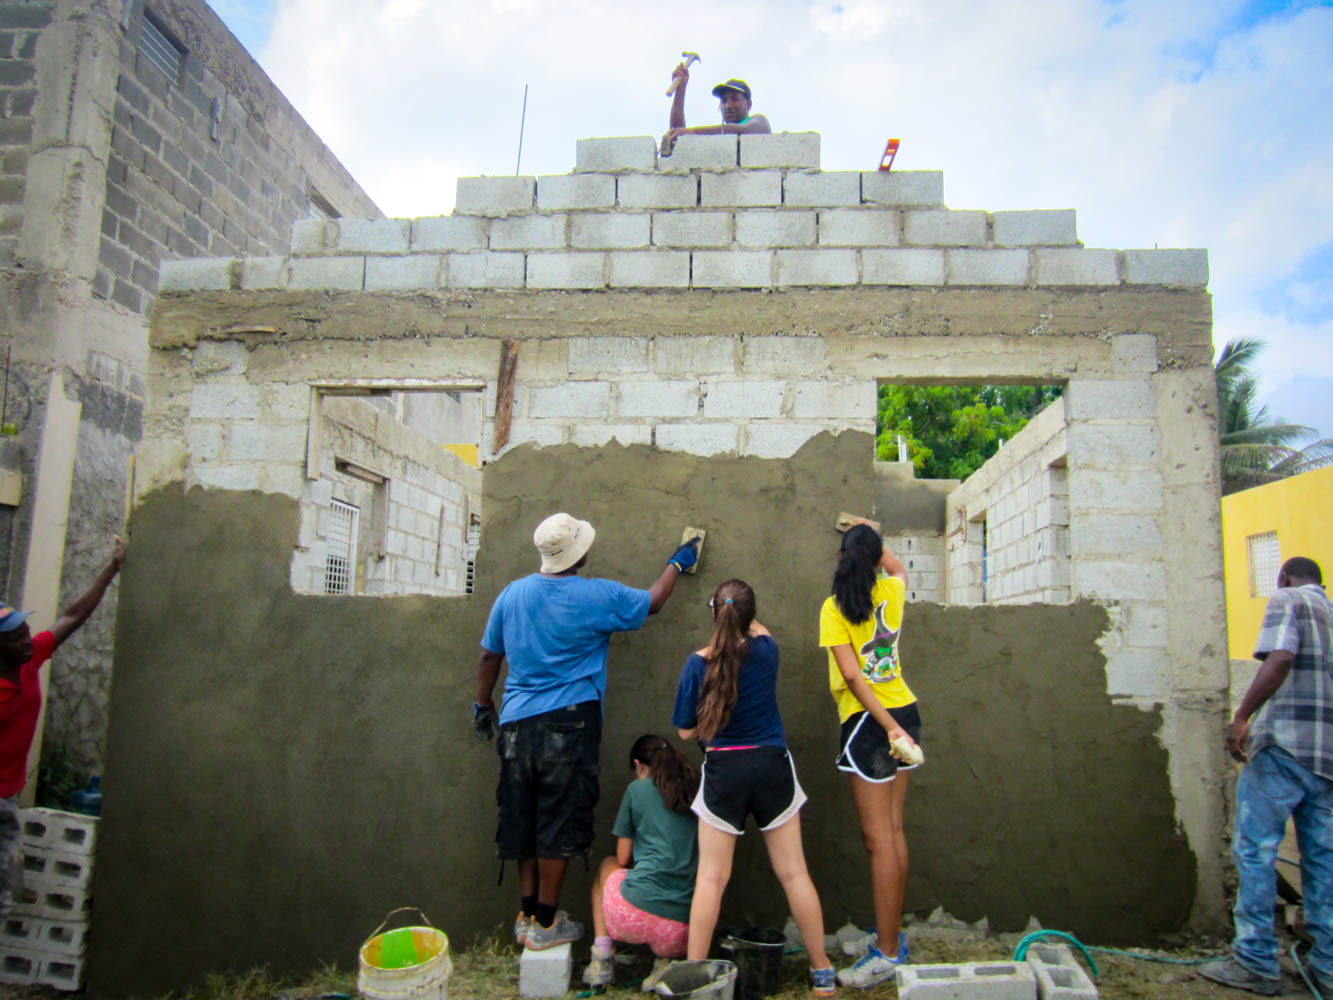 VISIONS participants and local community members collaborating in the Dominican Republic.